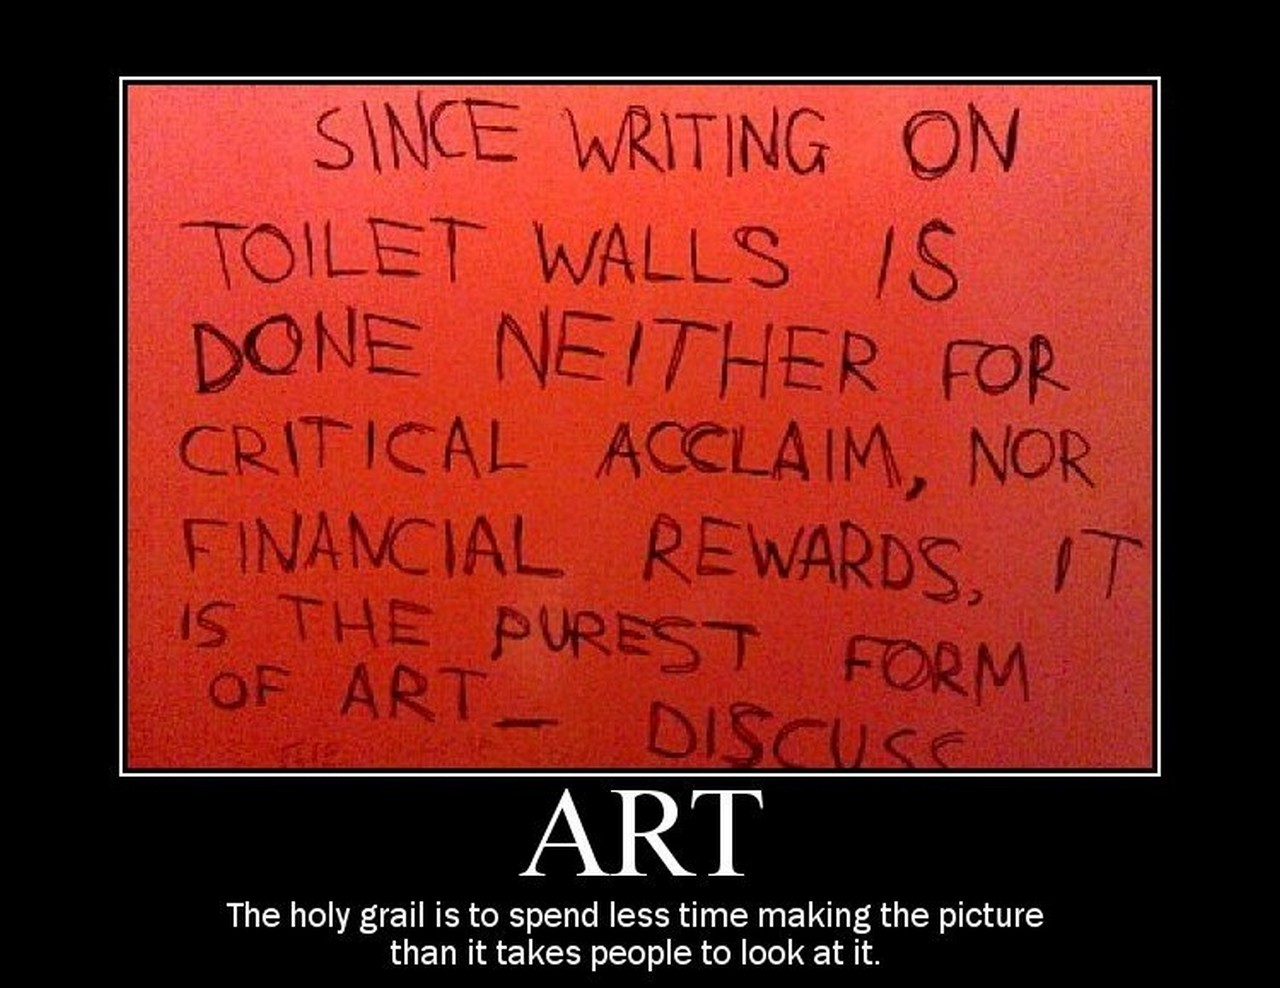 Bathroom Stall Writing Purest Form Of Art chuck's fun page 2: humor delivered in the motivational poster